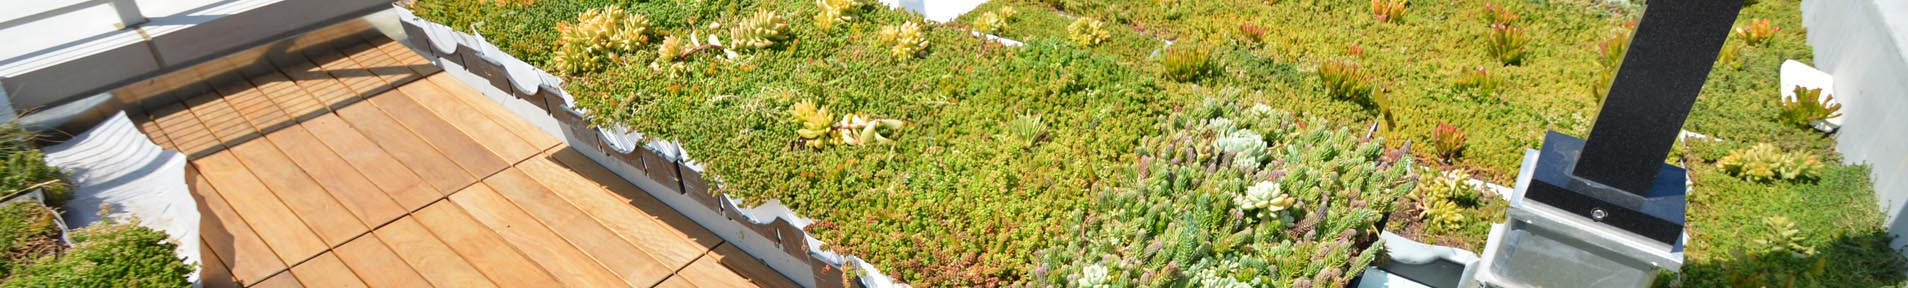 Plant-Tray-Green-Roof_Banner_02